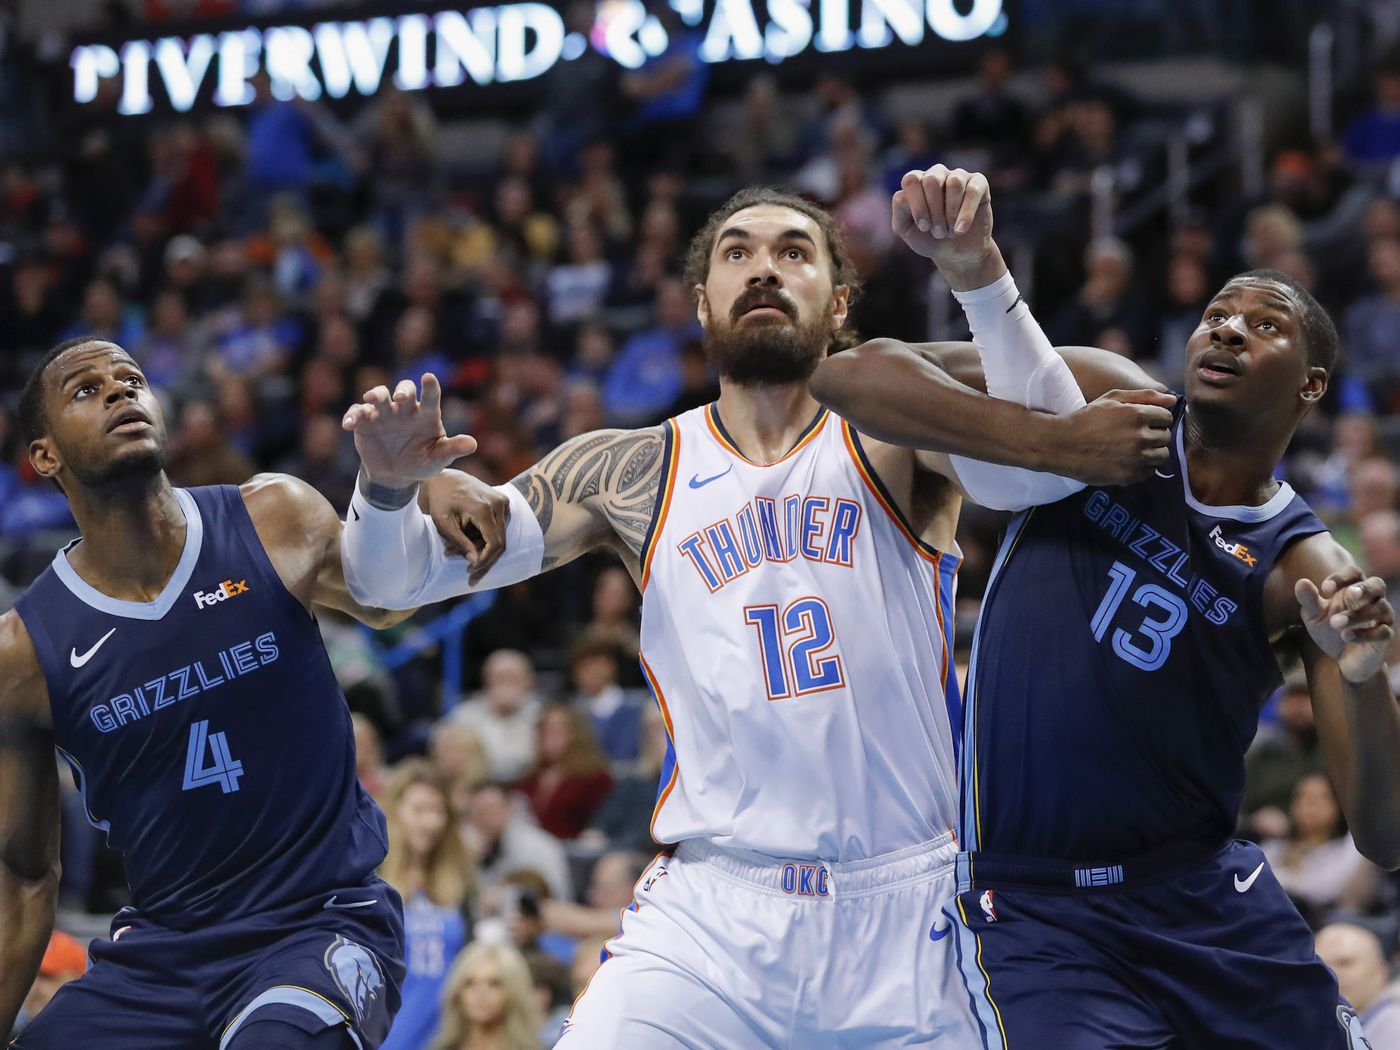 Grizzlies thunder betting previews martingale betting roulette